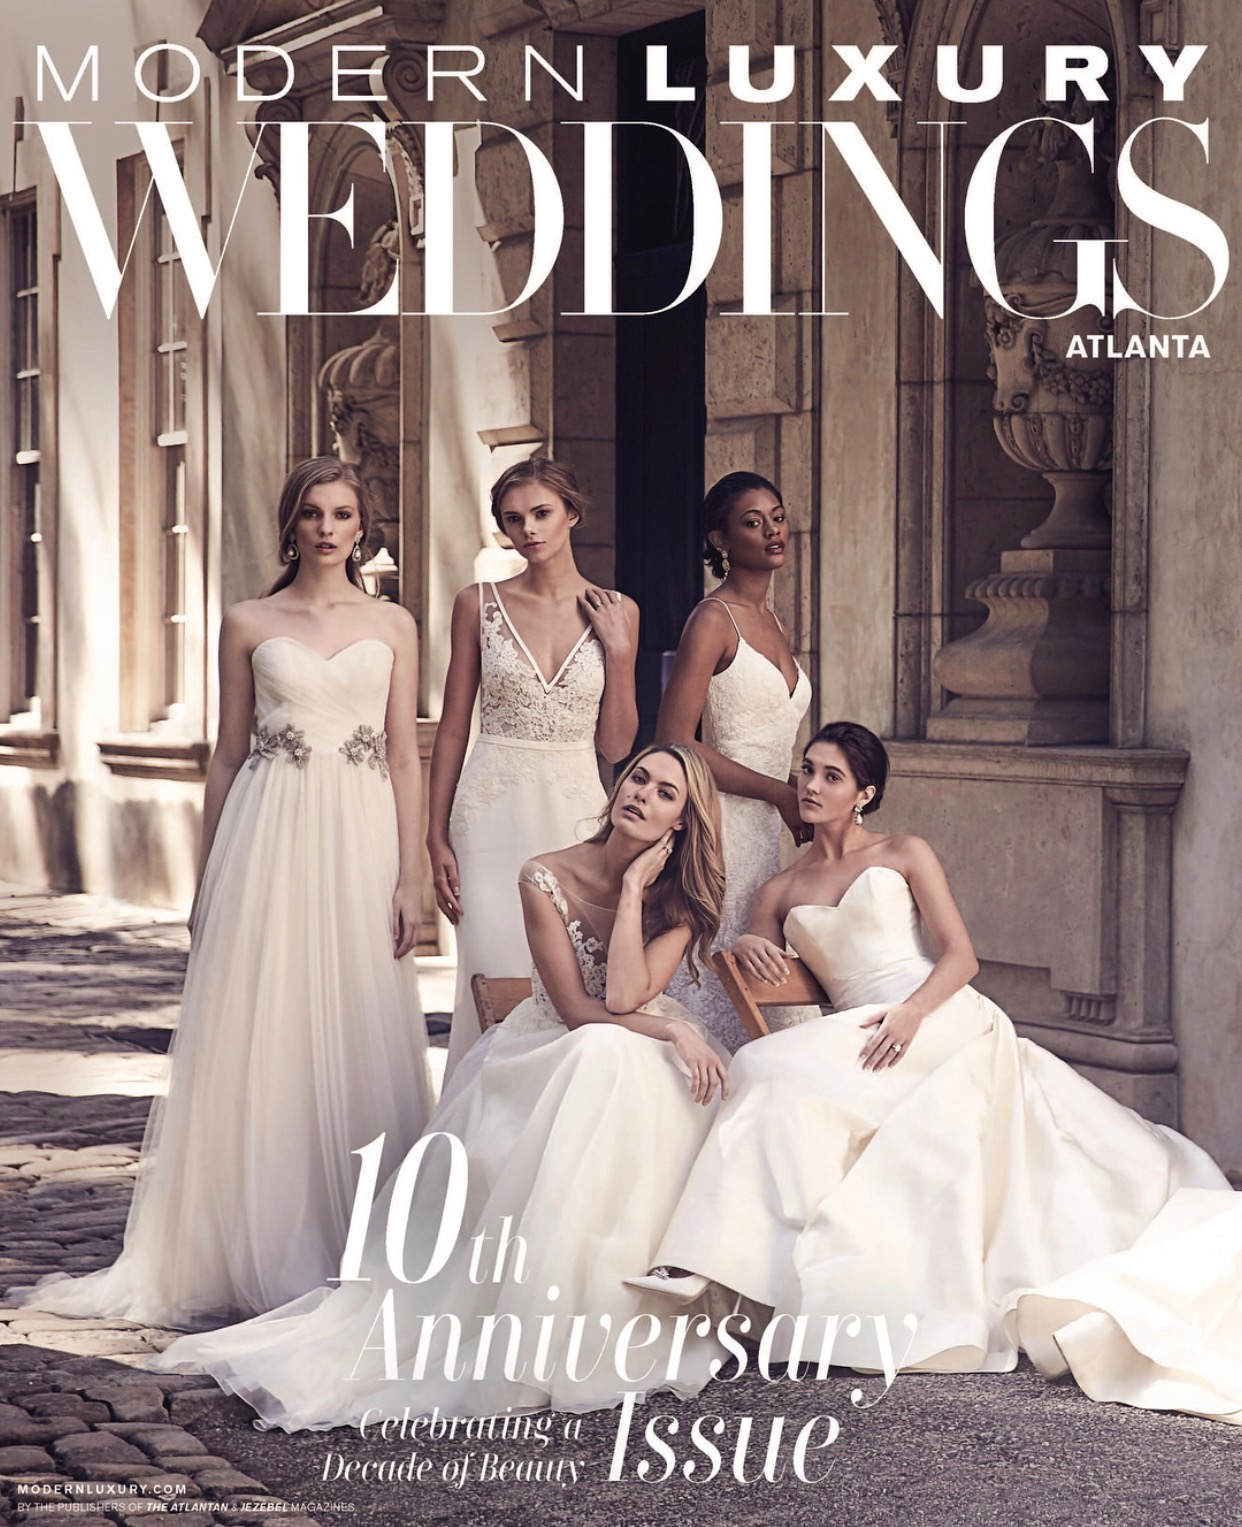 Messieurs Swank Featured as Top 10 Entertainment for Modern Luxury Weddings Atlanta 10th Anniversary Edition -